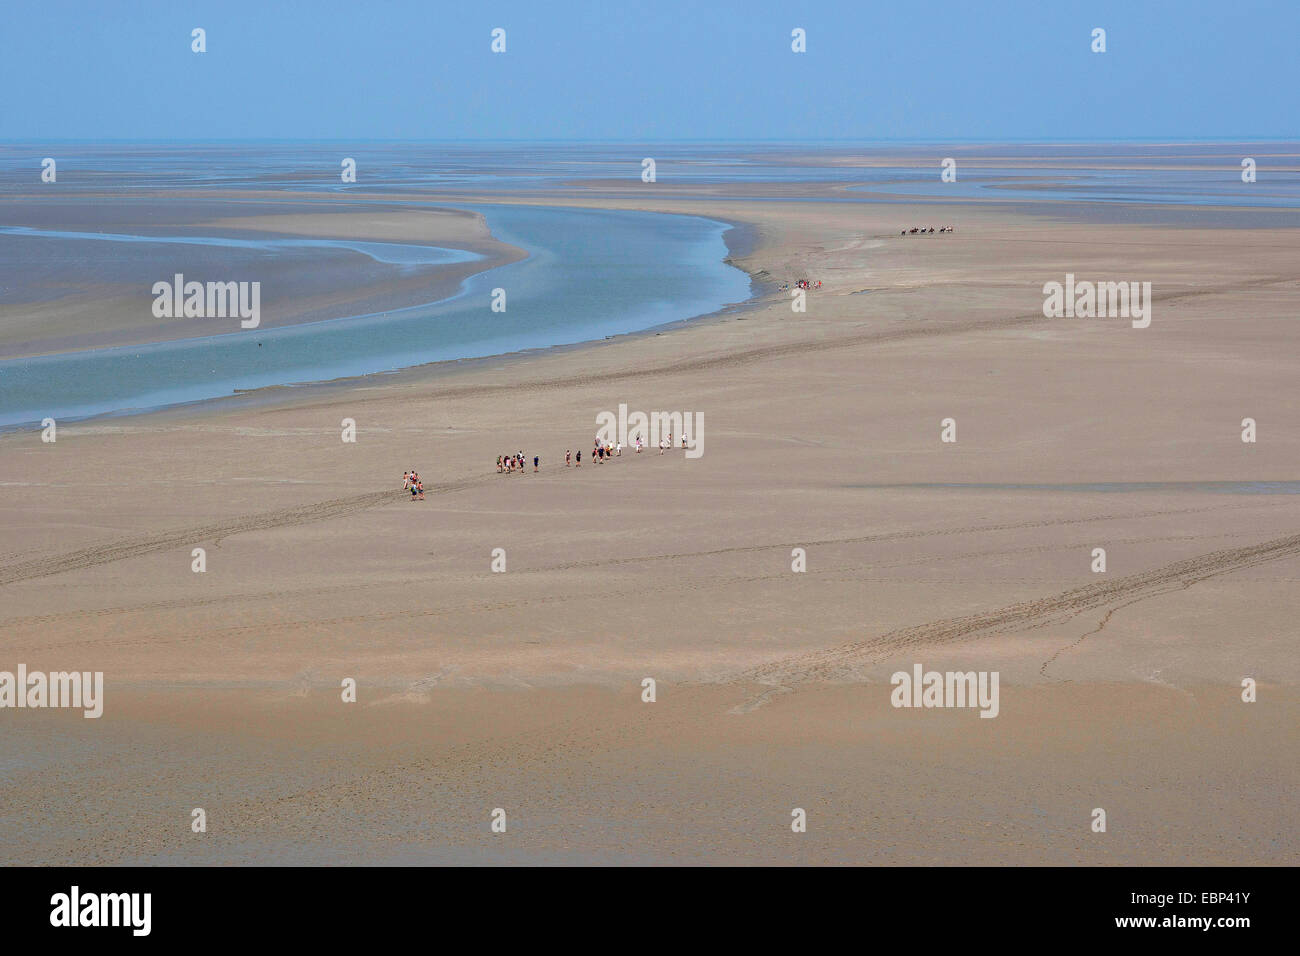 sandy tideland at low tide with tidal flat hikers, France, Brittany Stock Photo